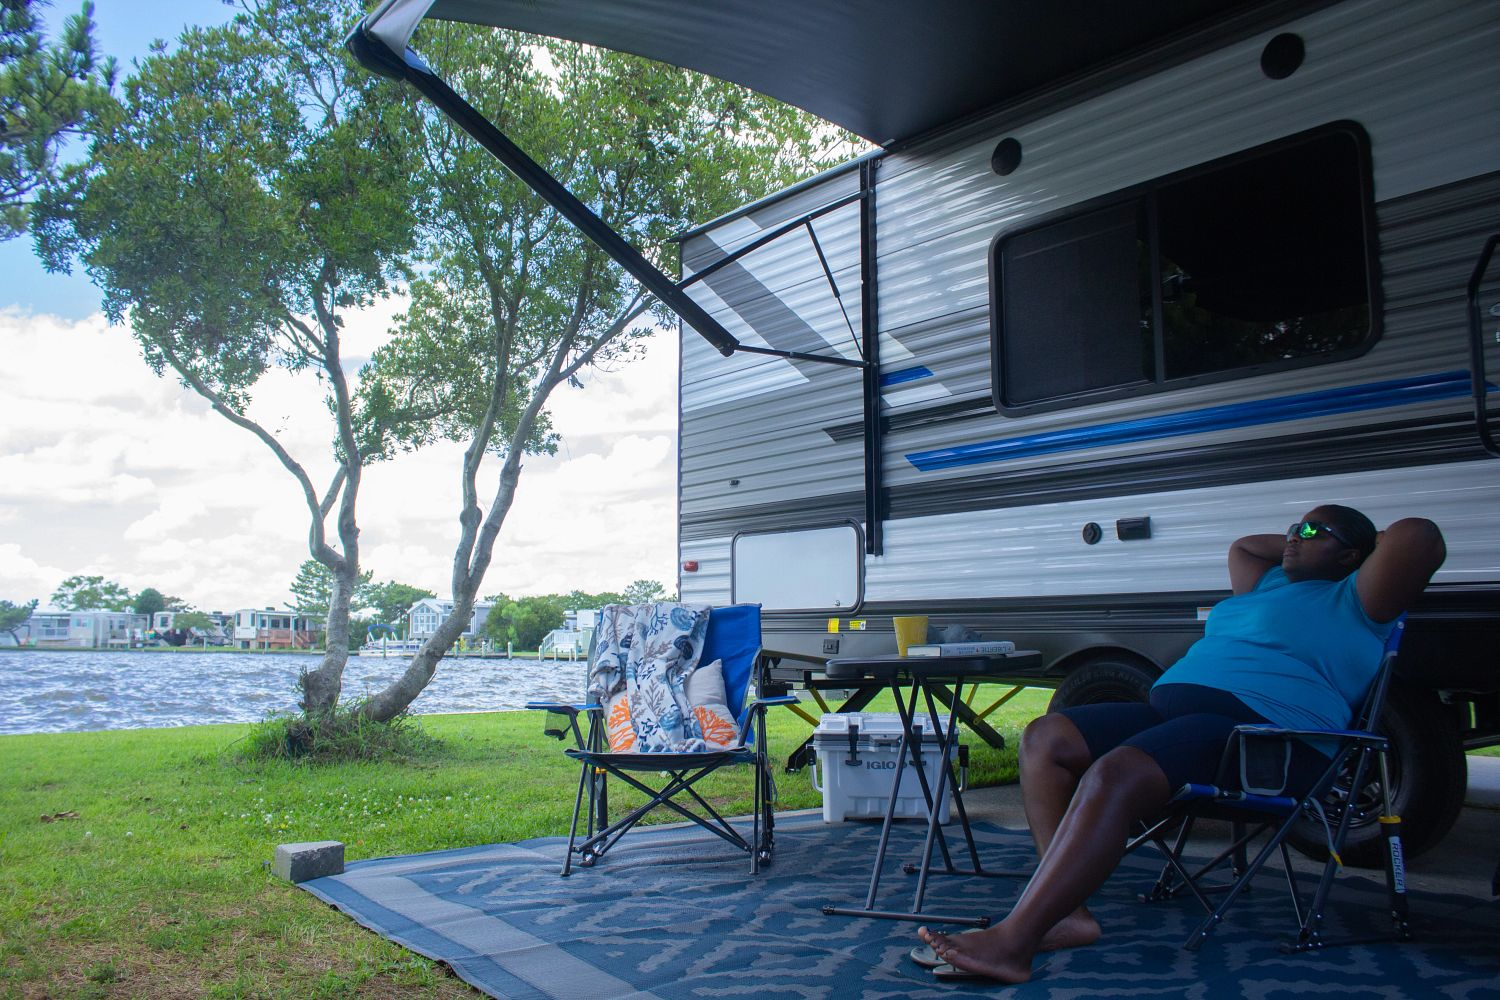 solo woman relaxing at campsite